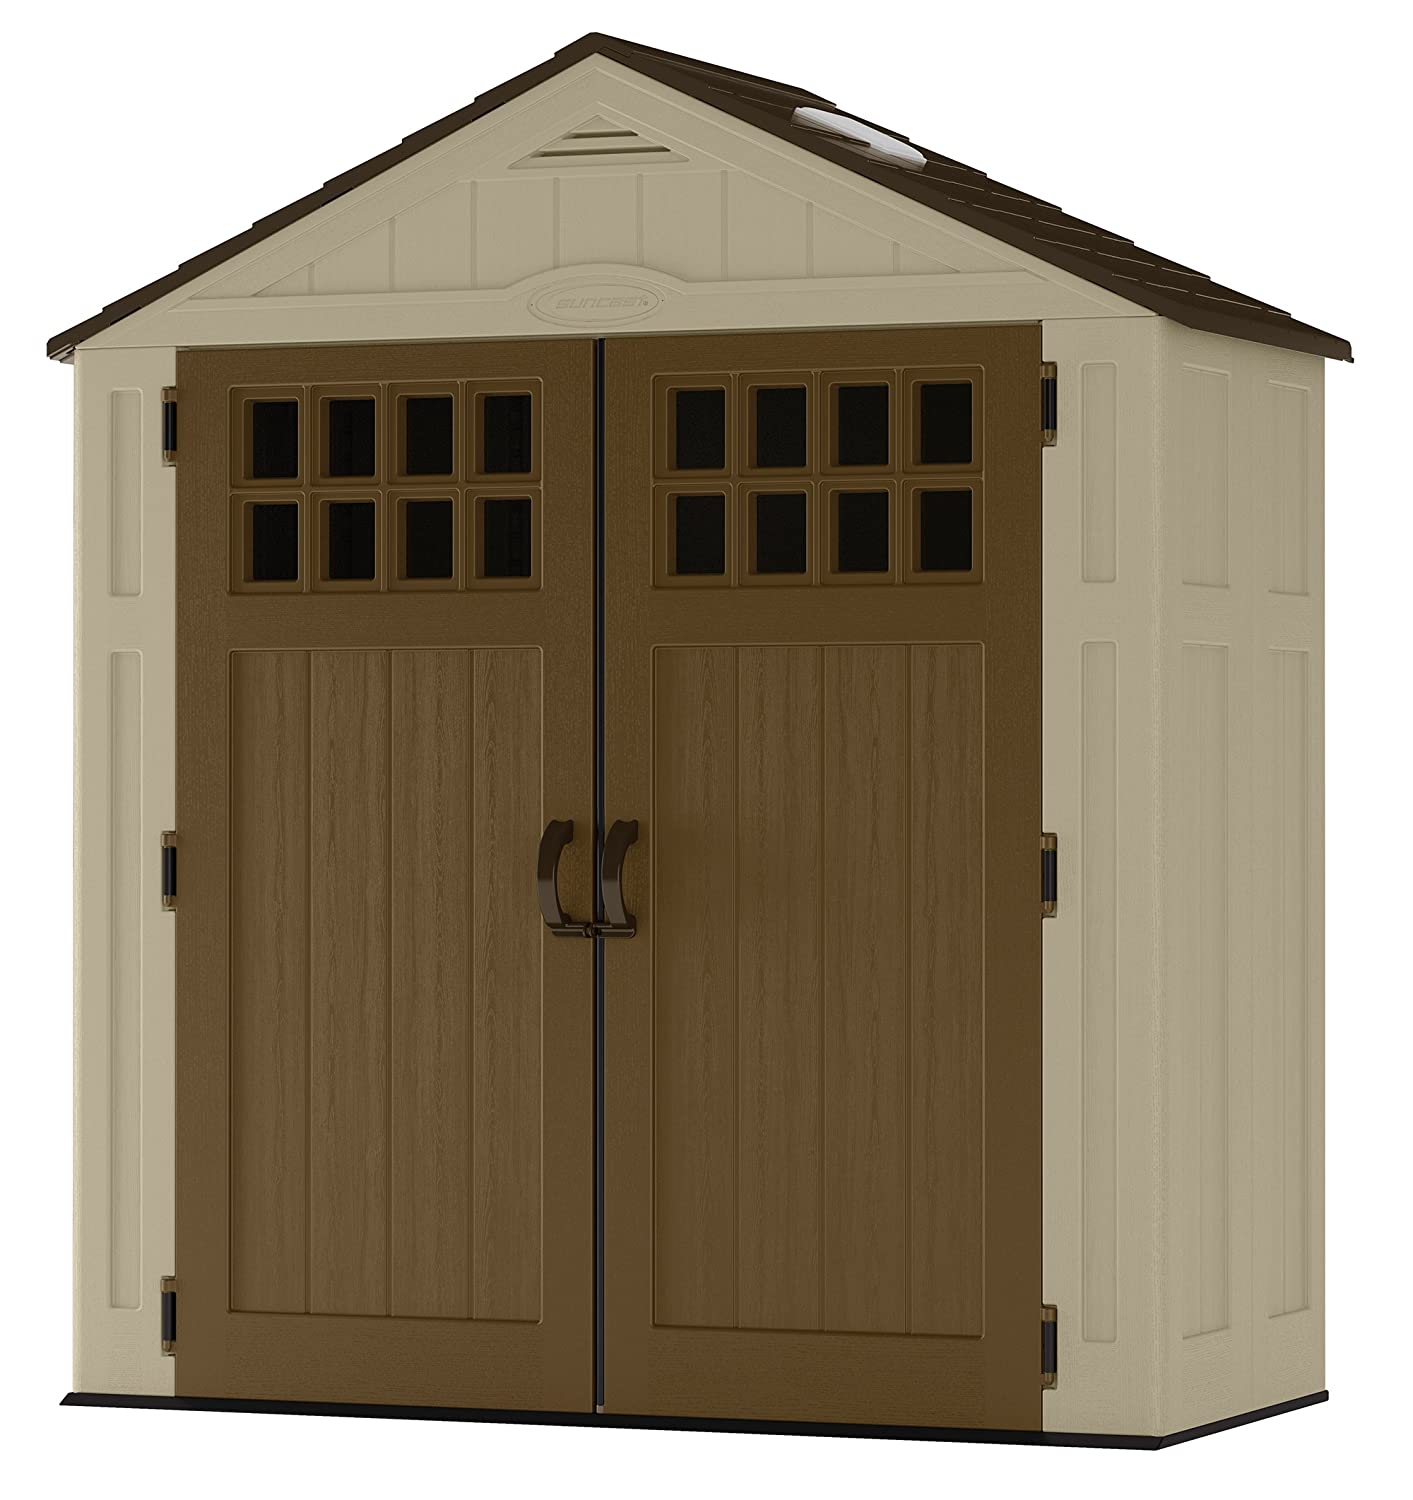 vinyl classic middlebury houses poolhouses sheds x workshop and pool from fence product